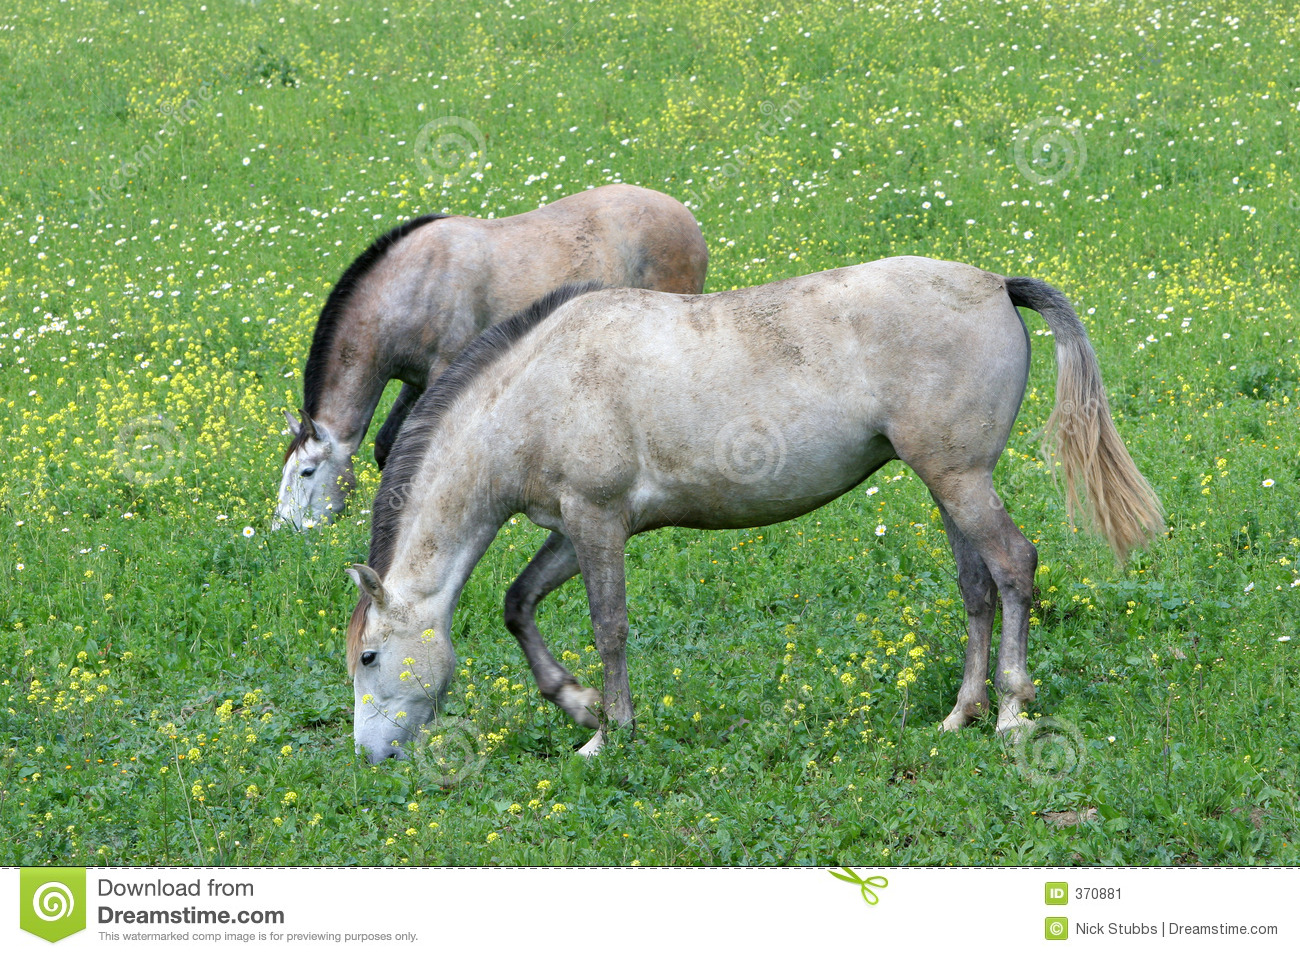 Two white Spanish Andalucian horses standing in a field